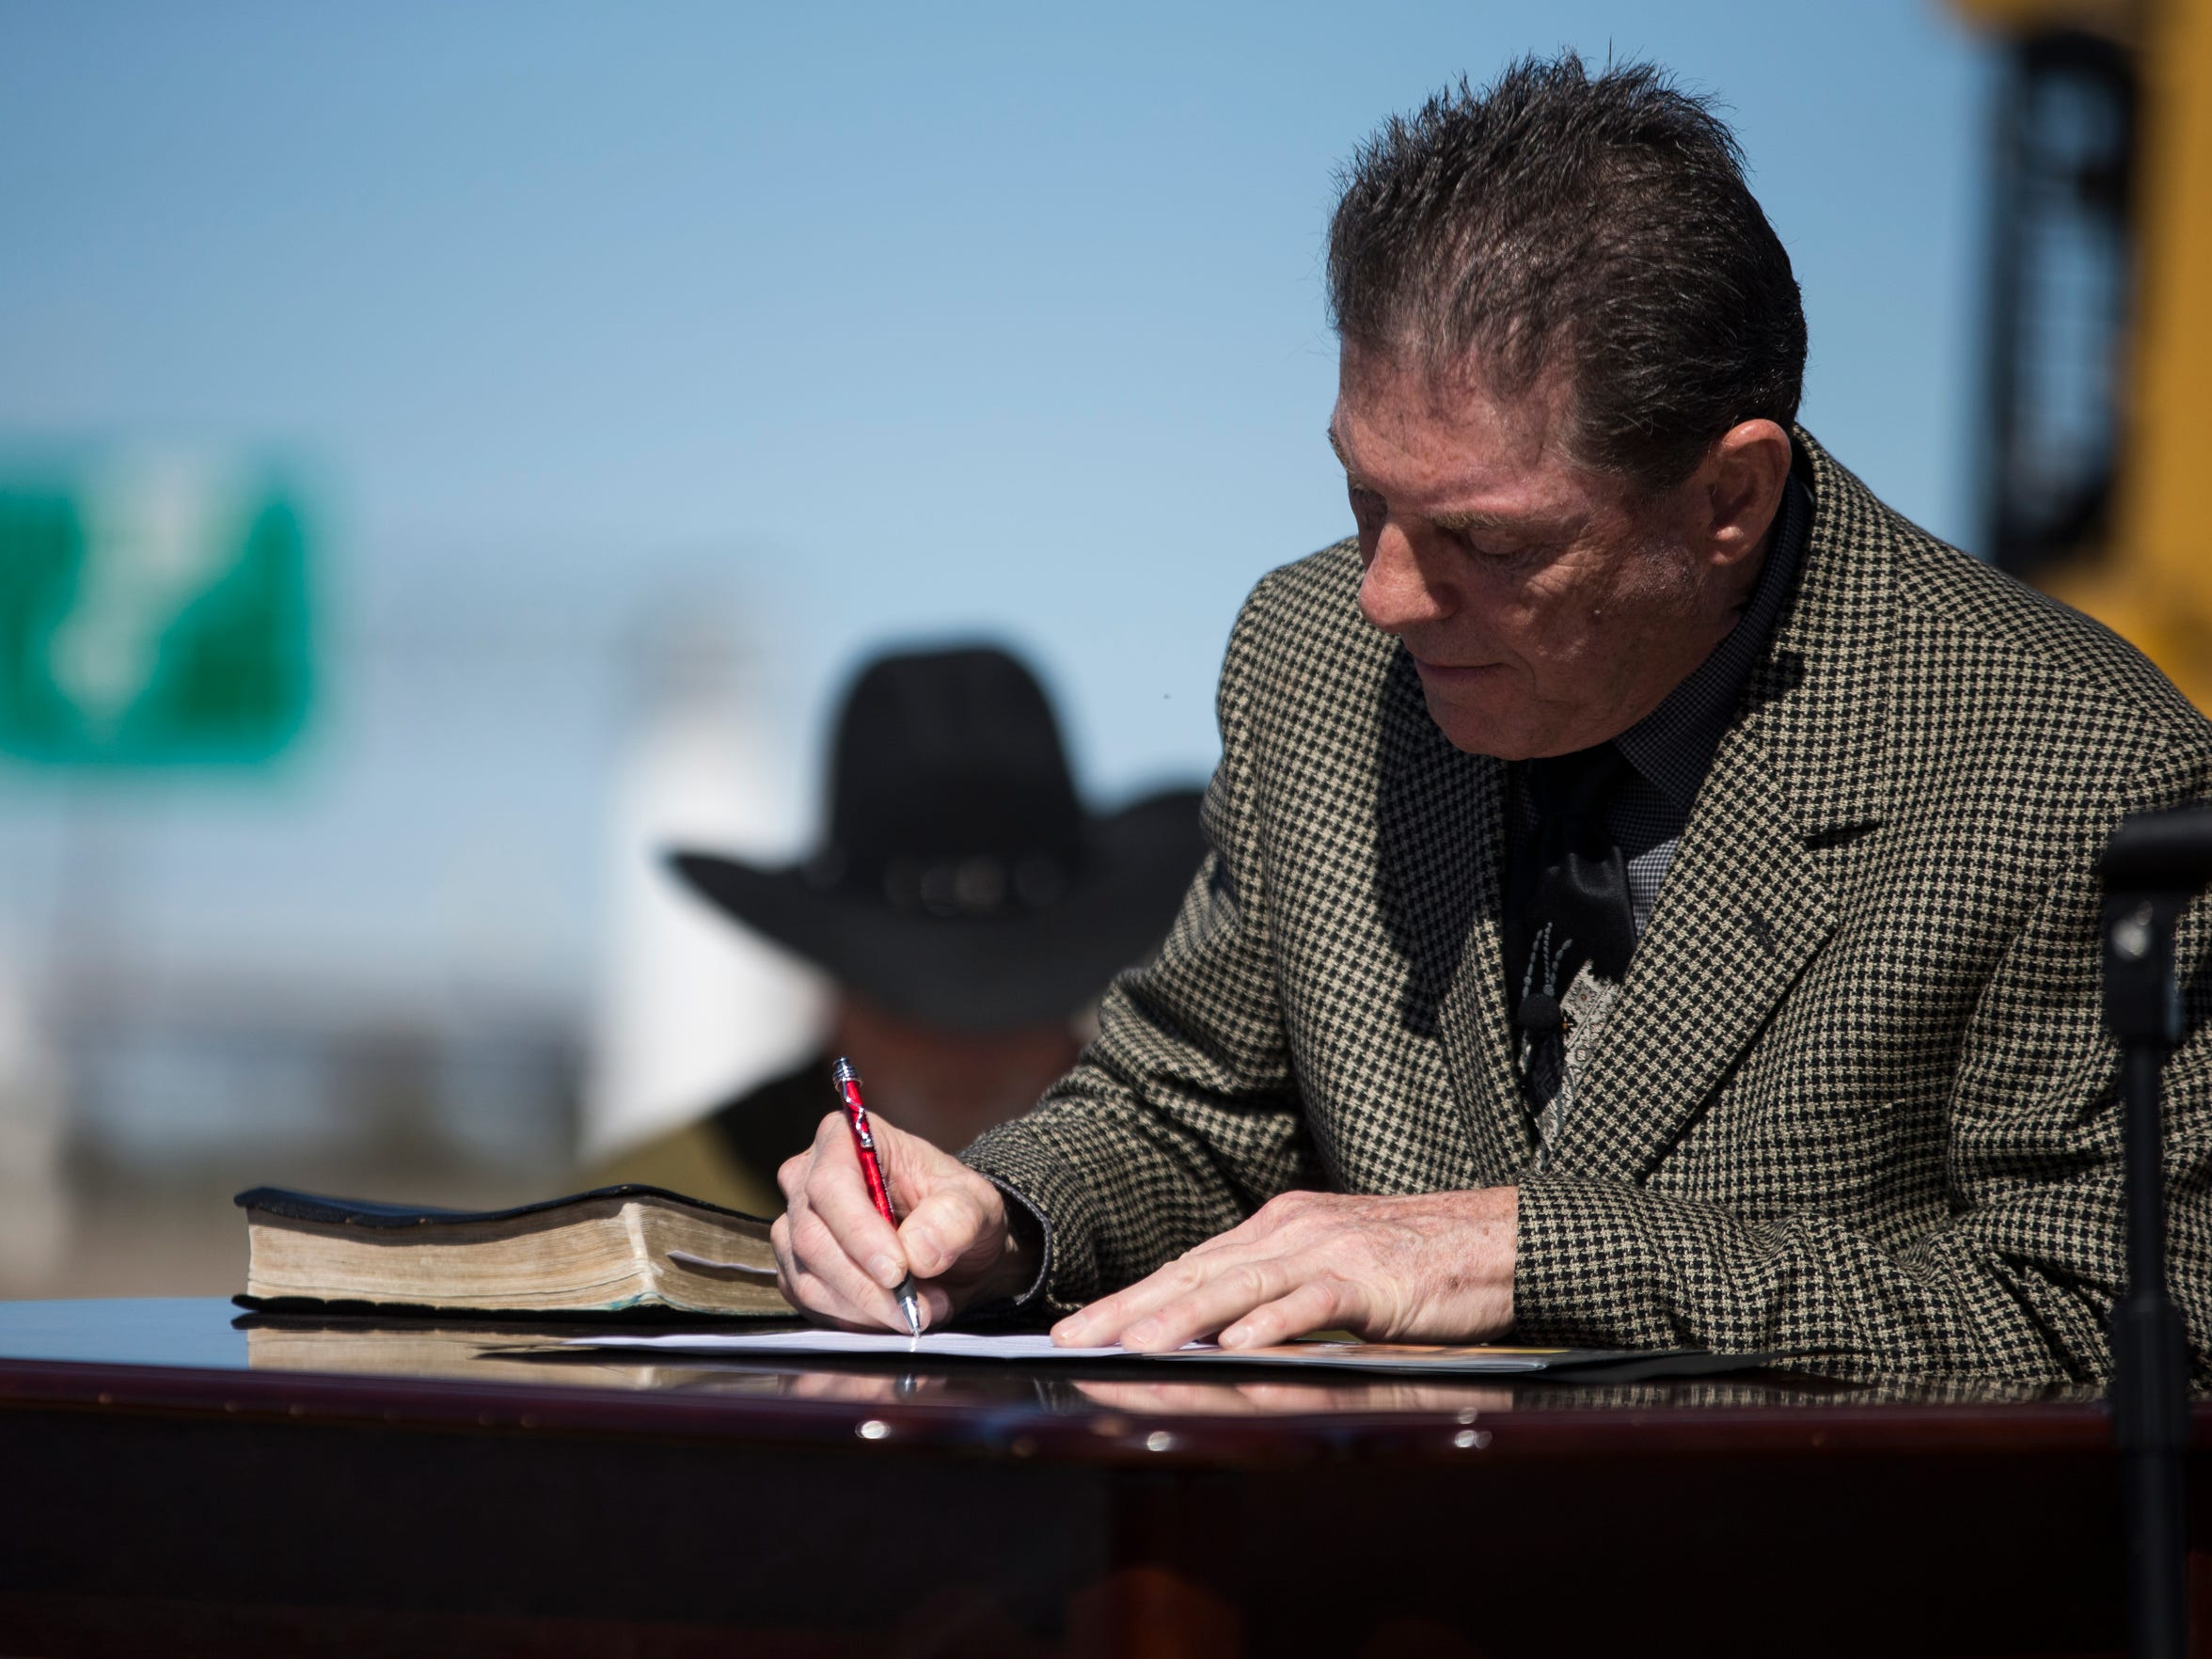 Pastor Richard Milby signs a contract to start construction on the base of the Corpus Christi Cross during a ceremony Monday, Jan. 29, 2018, near Carbon Plant Road and Interstate 37.